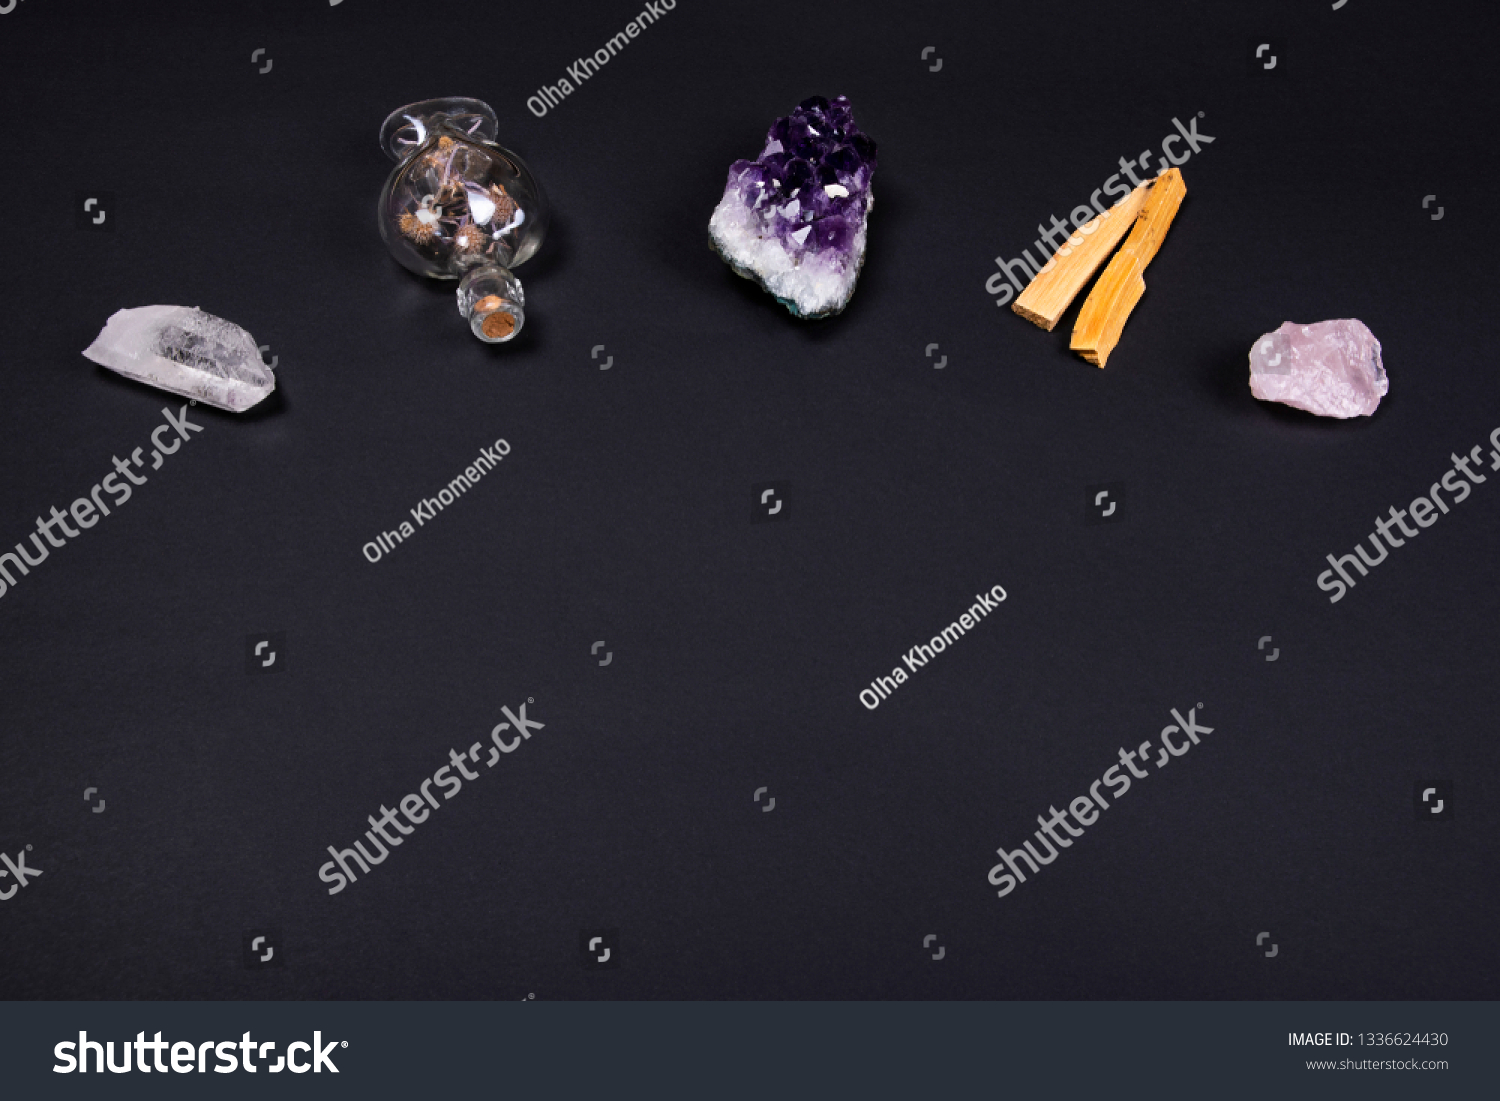 Canapé Relax Quartz Composition Esoteric Objects Used Healing Meditation Stock Photo